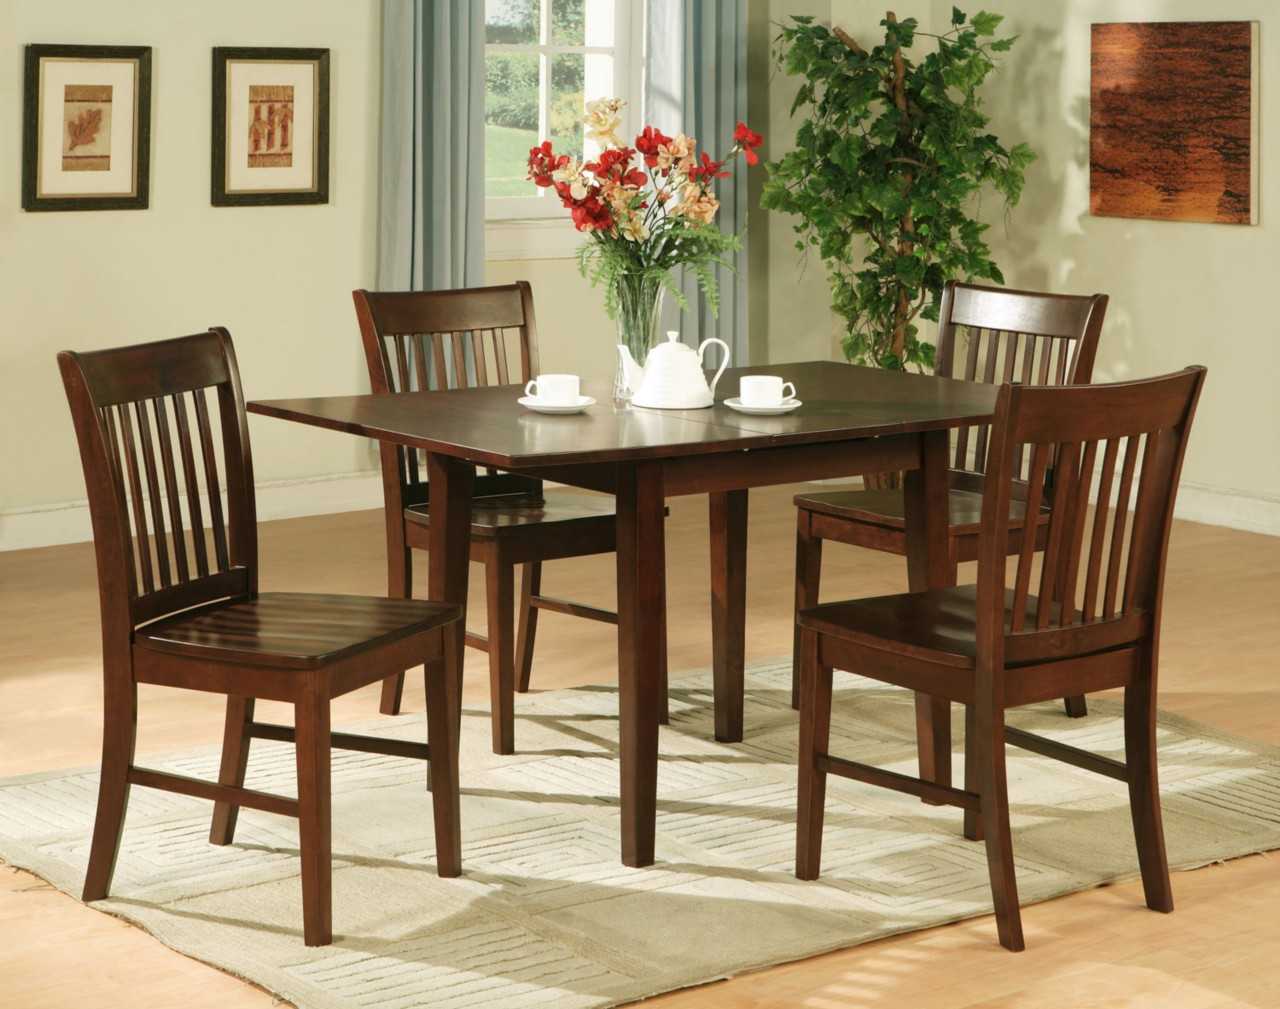 5pc rectangular kitchen dinette table 4 chairs mahogany ebay. Black Bedroom Furniture Sets. Home Design Ideas